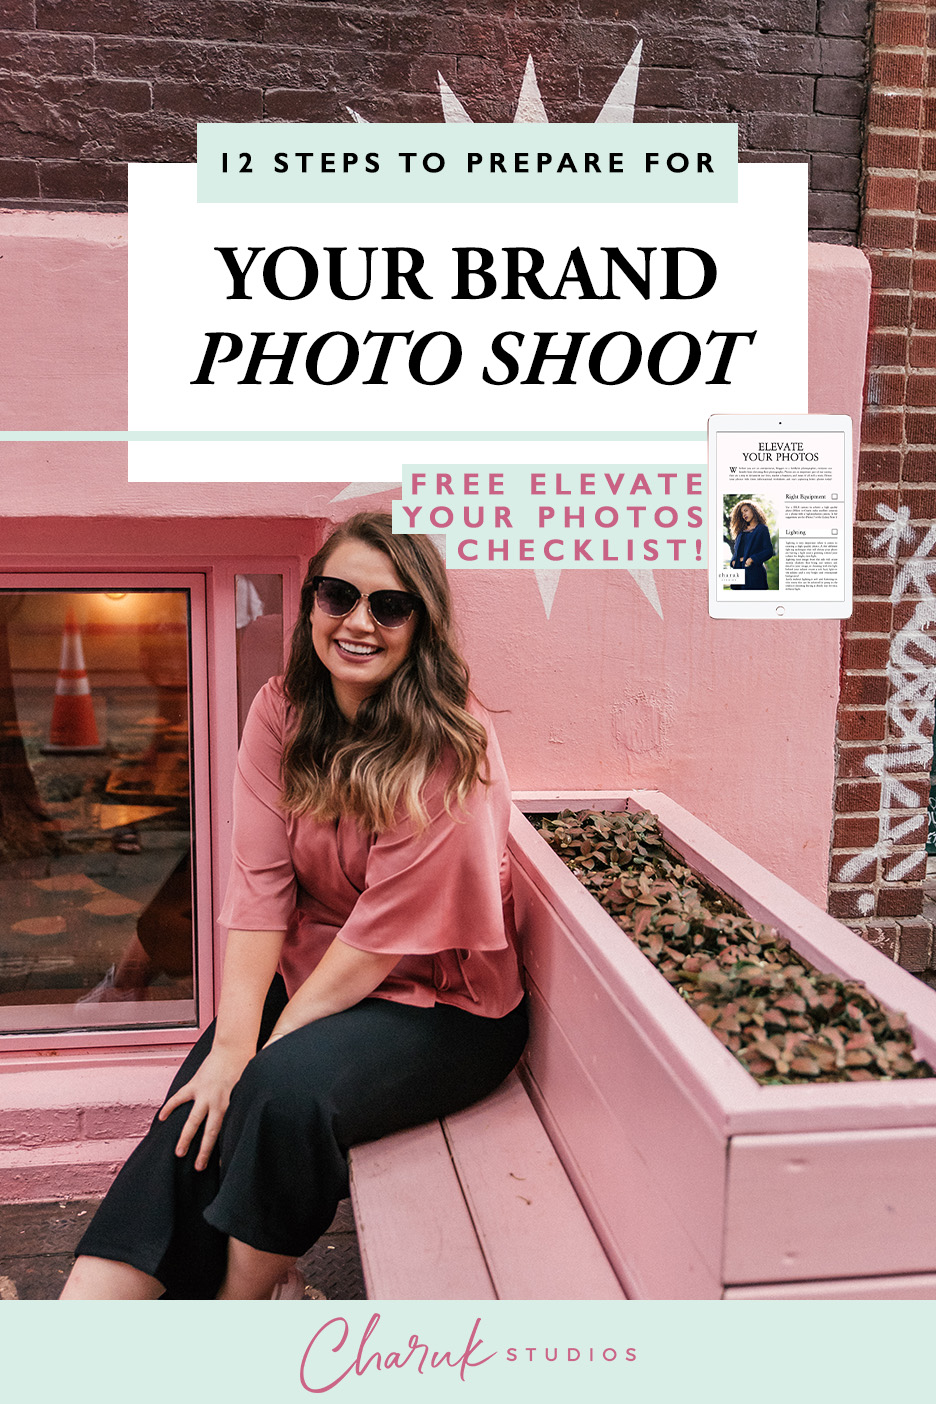 12 Steps to Prepare for You Brand Photo Shoot by Charuk Studios.jpg